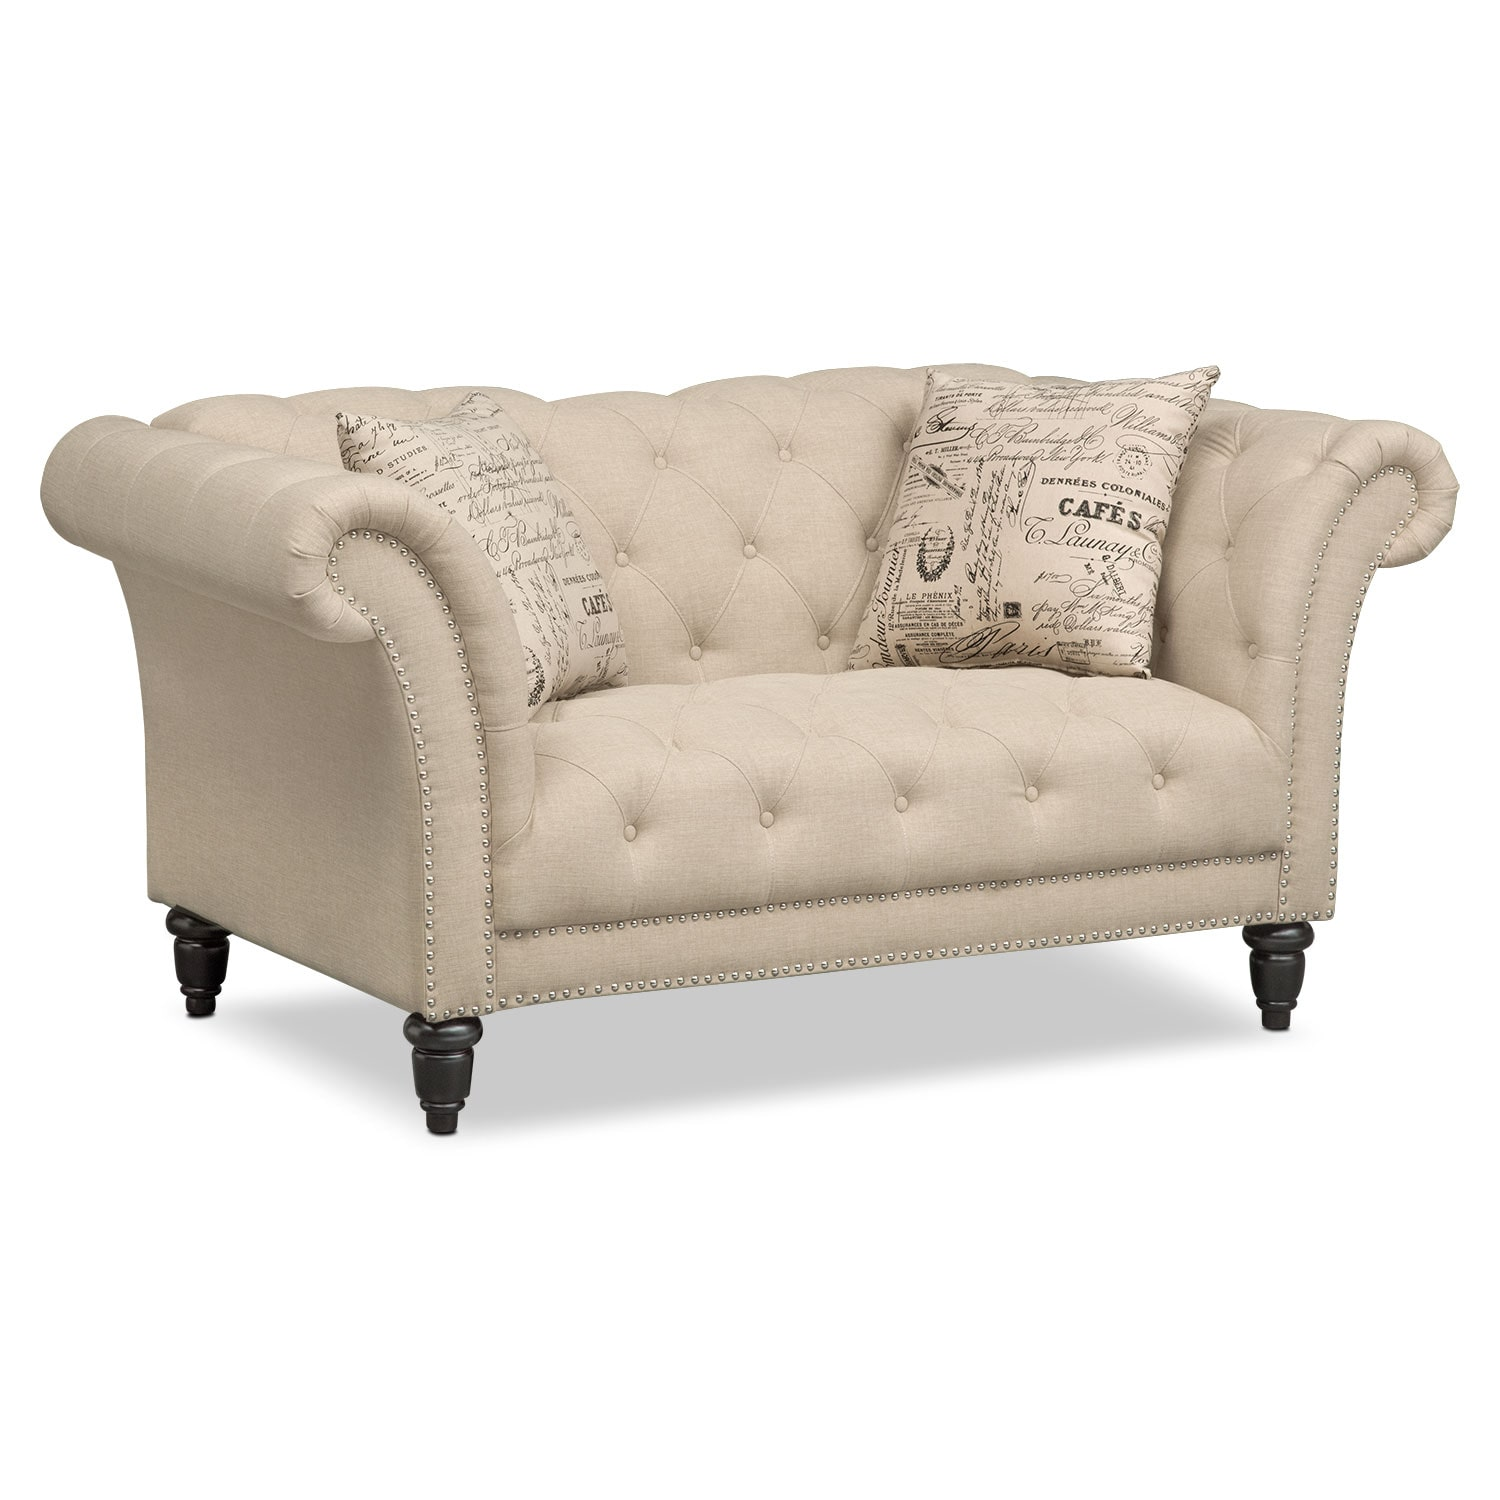 Marisol Sofa Loveseat and Armless Chair Set Beige